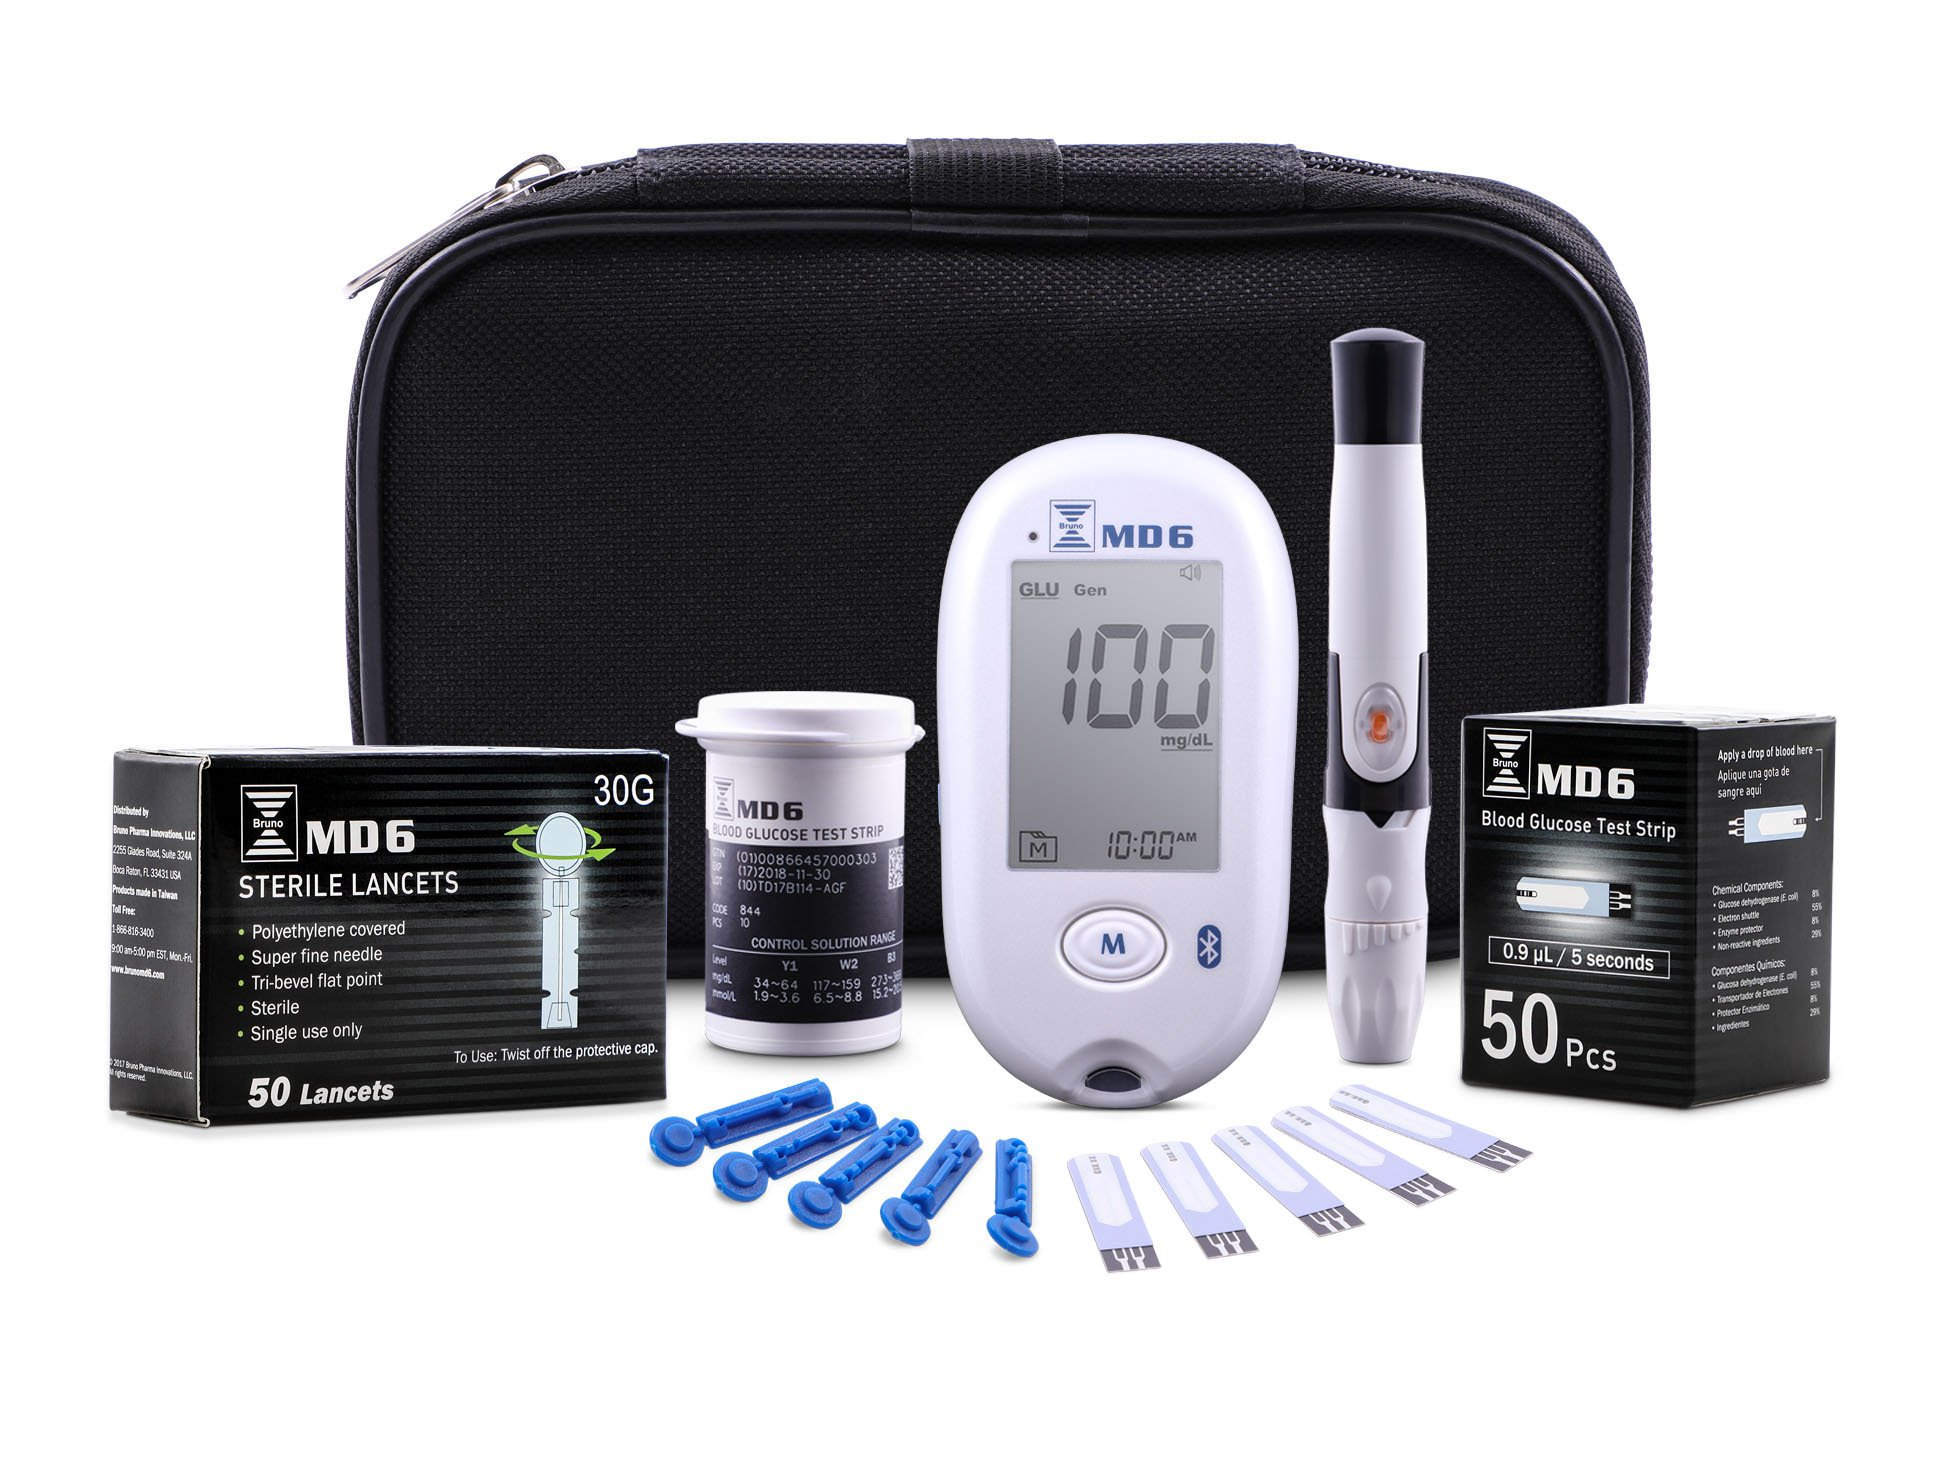 Bruno Pharma MD6 Diabetes Blood Glucose Monitor Kit | Complete Diabetic Meter Testing Kit with Travel Case, Lancing Device, 50 Blood Sugar Test Strips + 50 Lancets | Fast Results with 5 Year Warranty